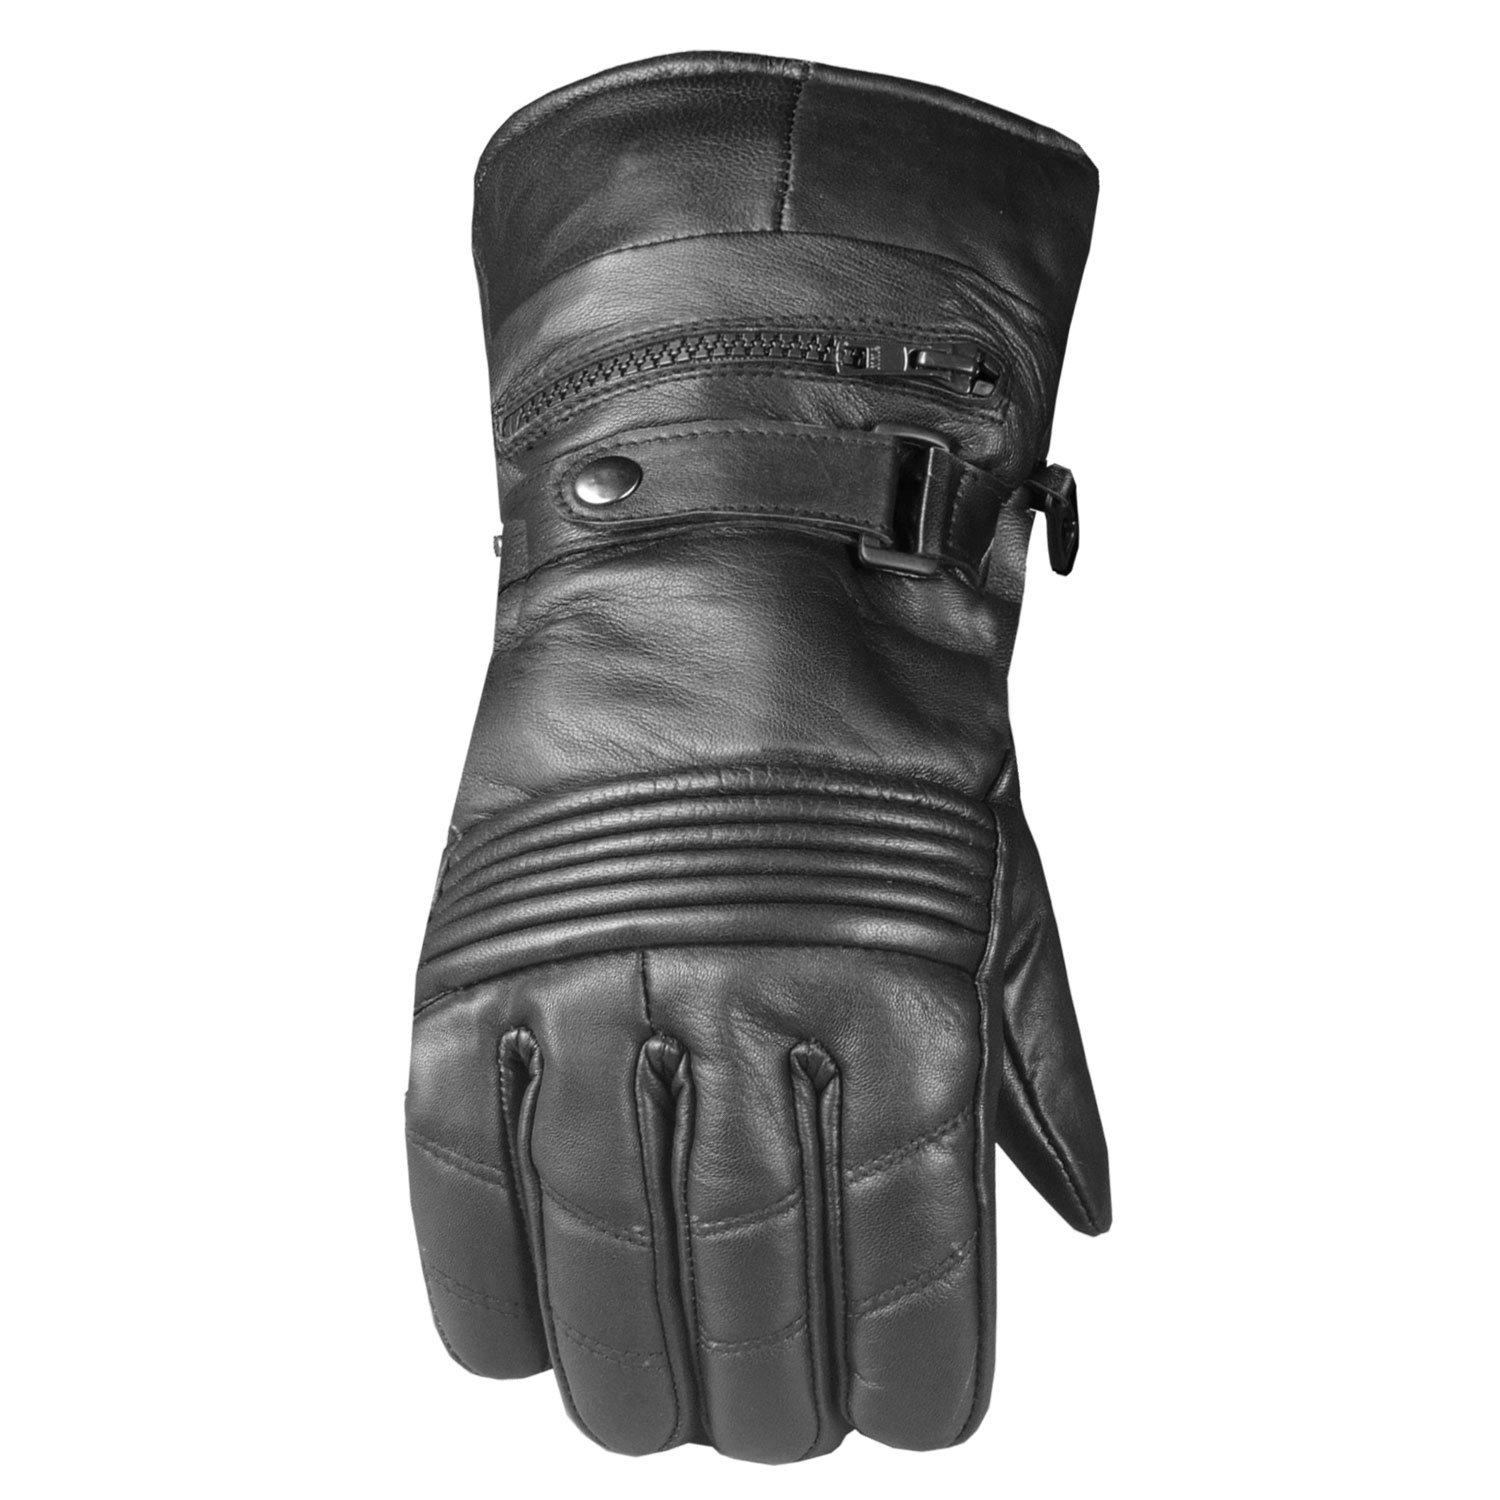 Men's Premium Leather Insulated Thinsulate Winter Motorcycle Gloves Black XL